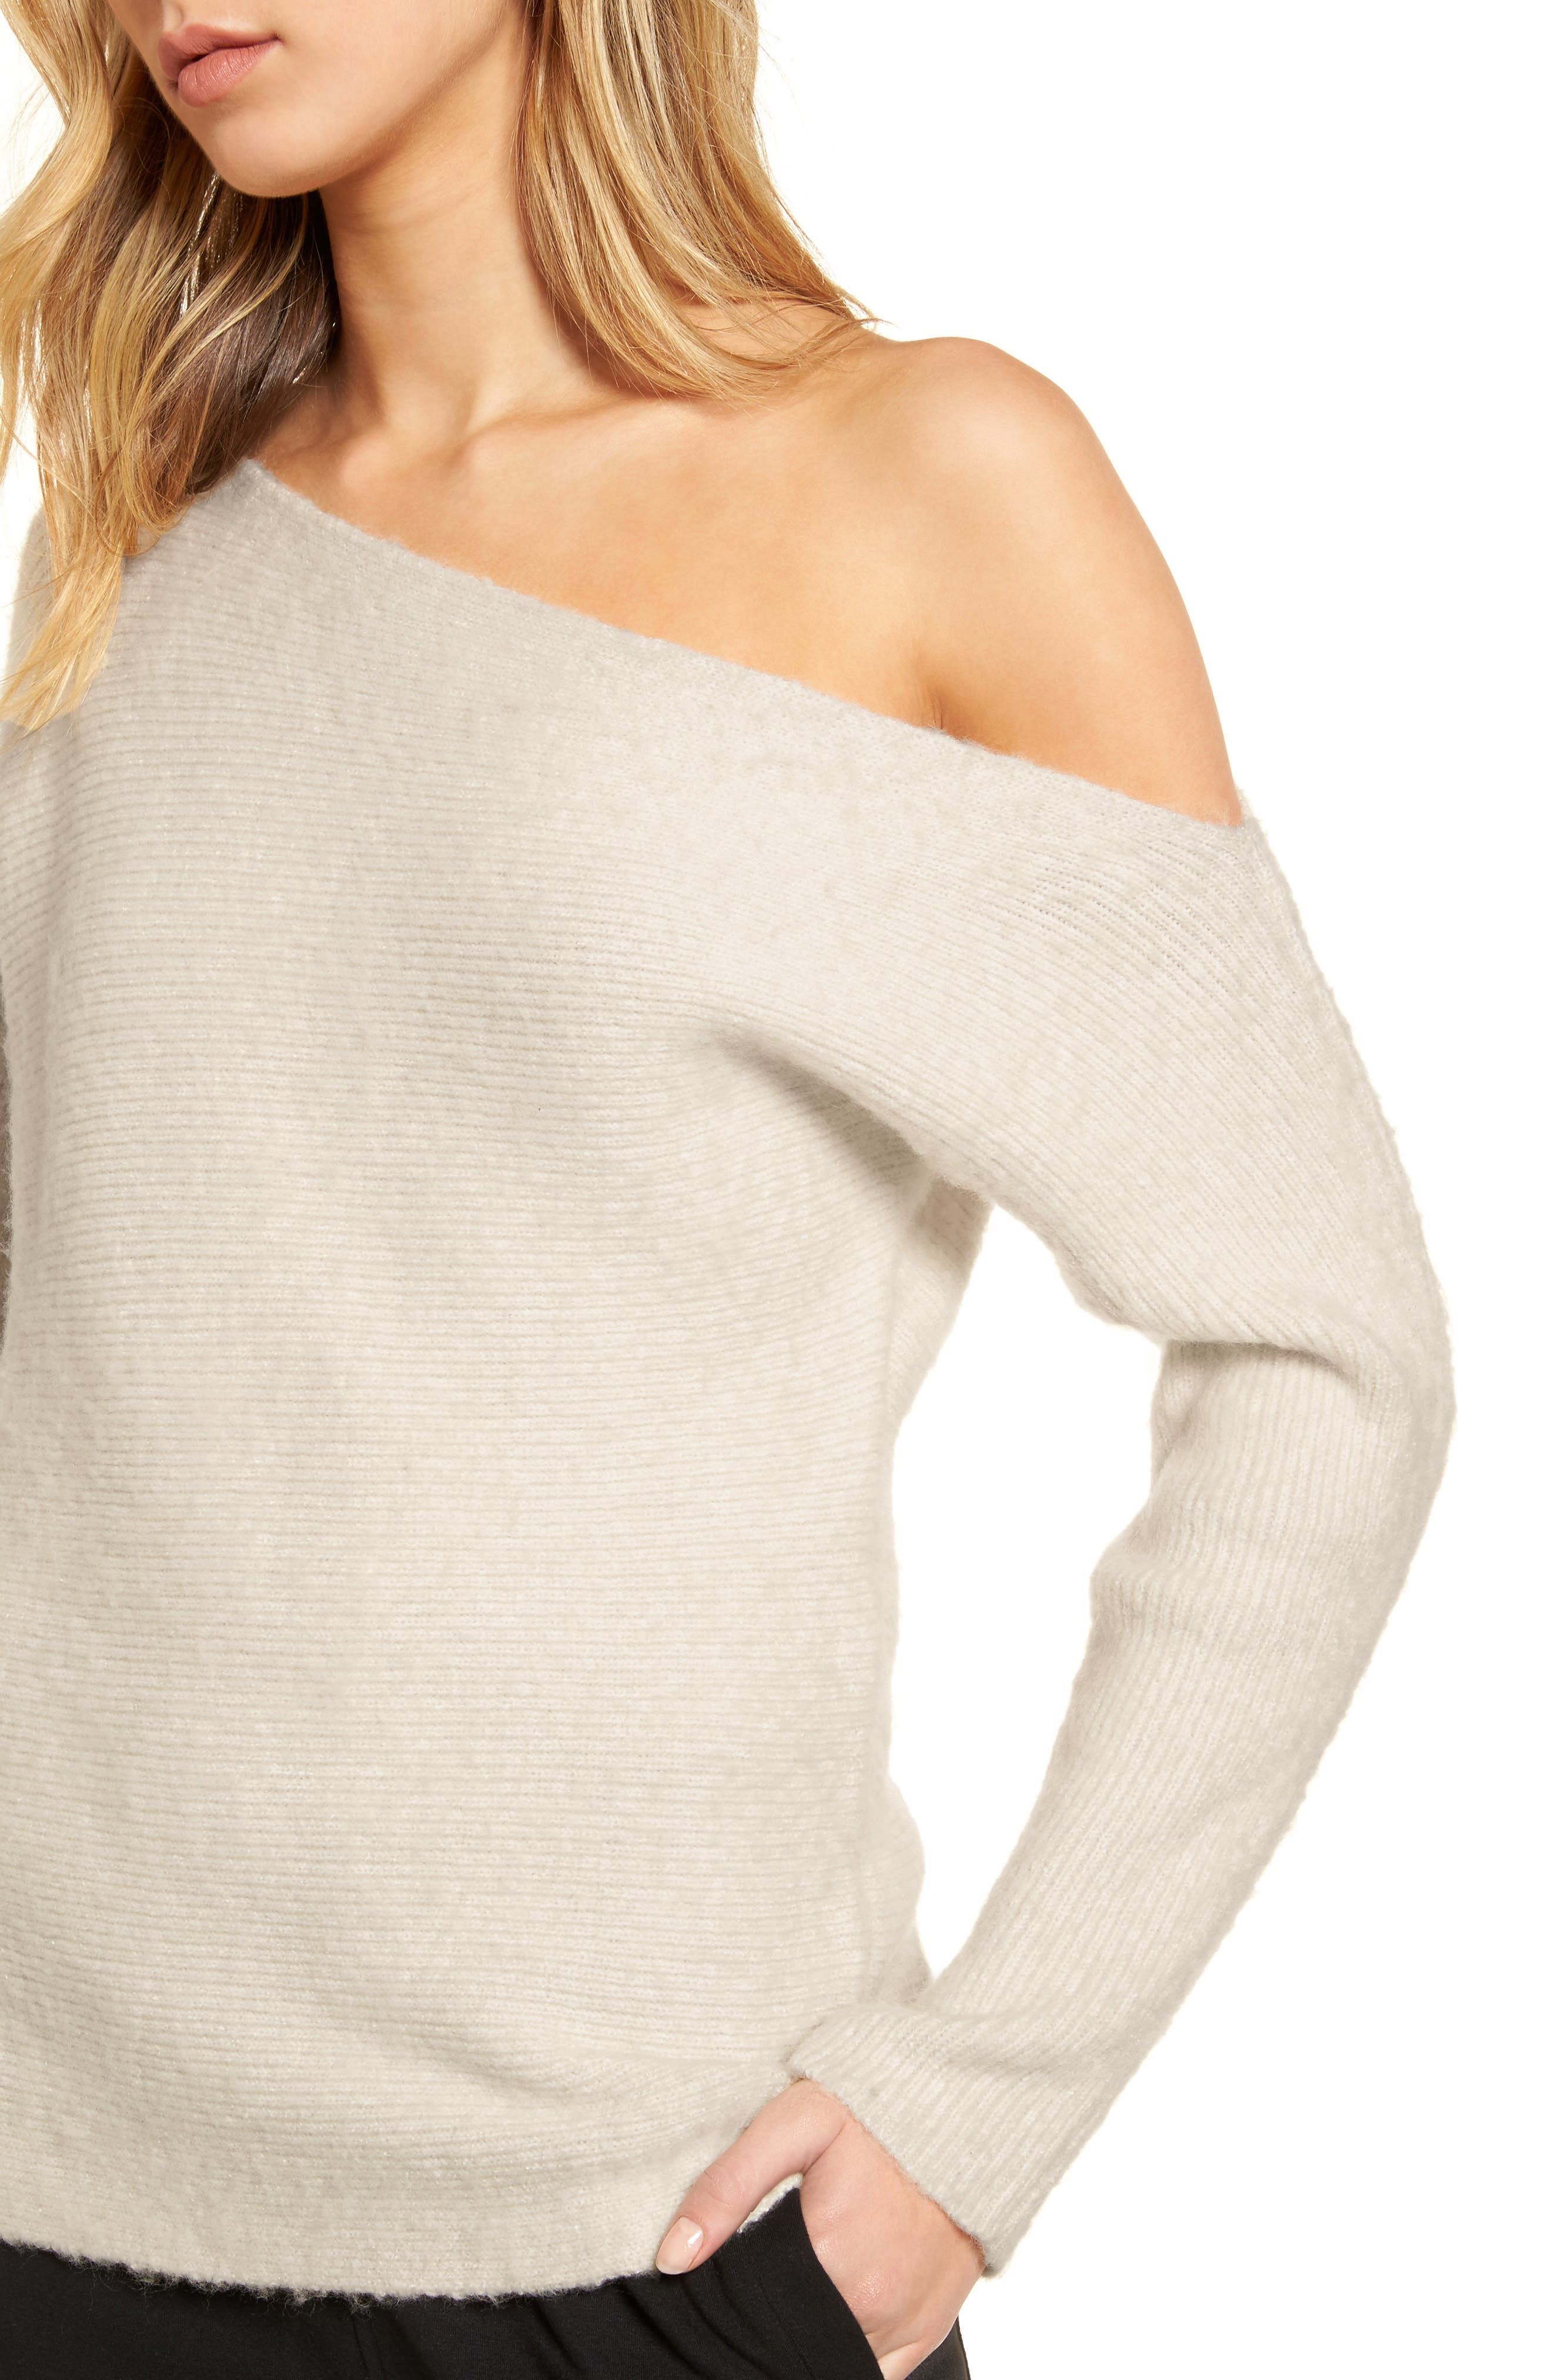 TREASURE & BOND,                             One-Shoulder Ribbed Sweater,                             Alternate thumbnail 4, color,                             BEIGE OATMEAL LIGHT HEATHER